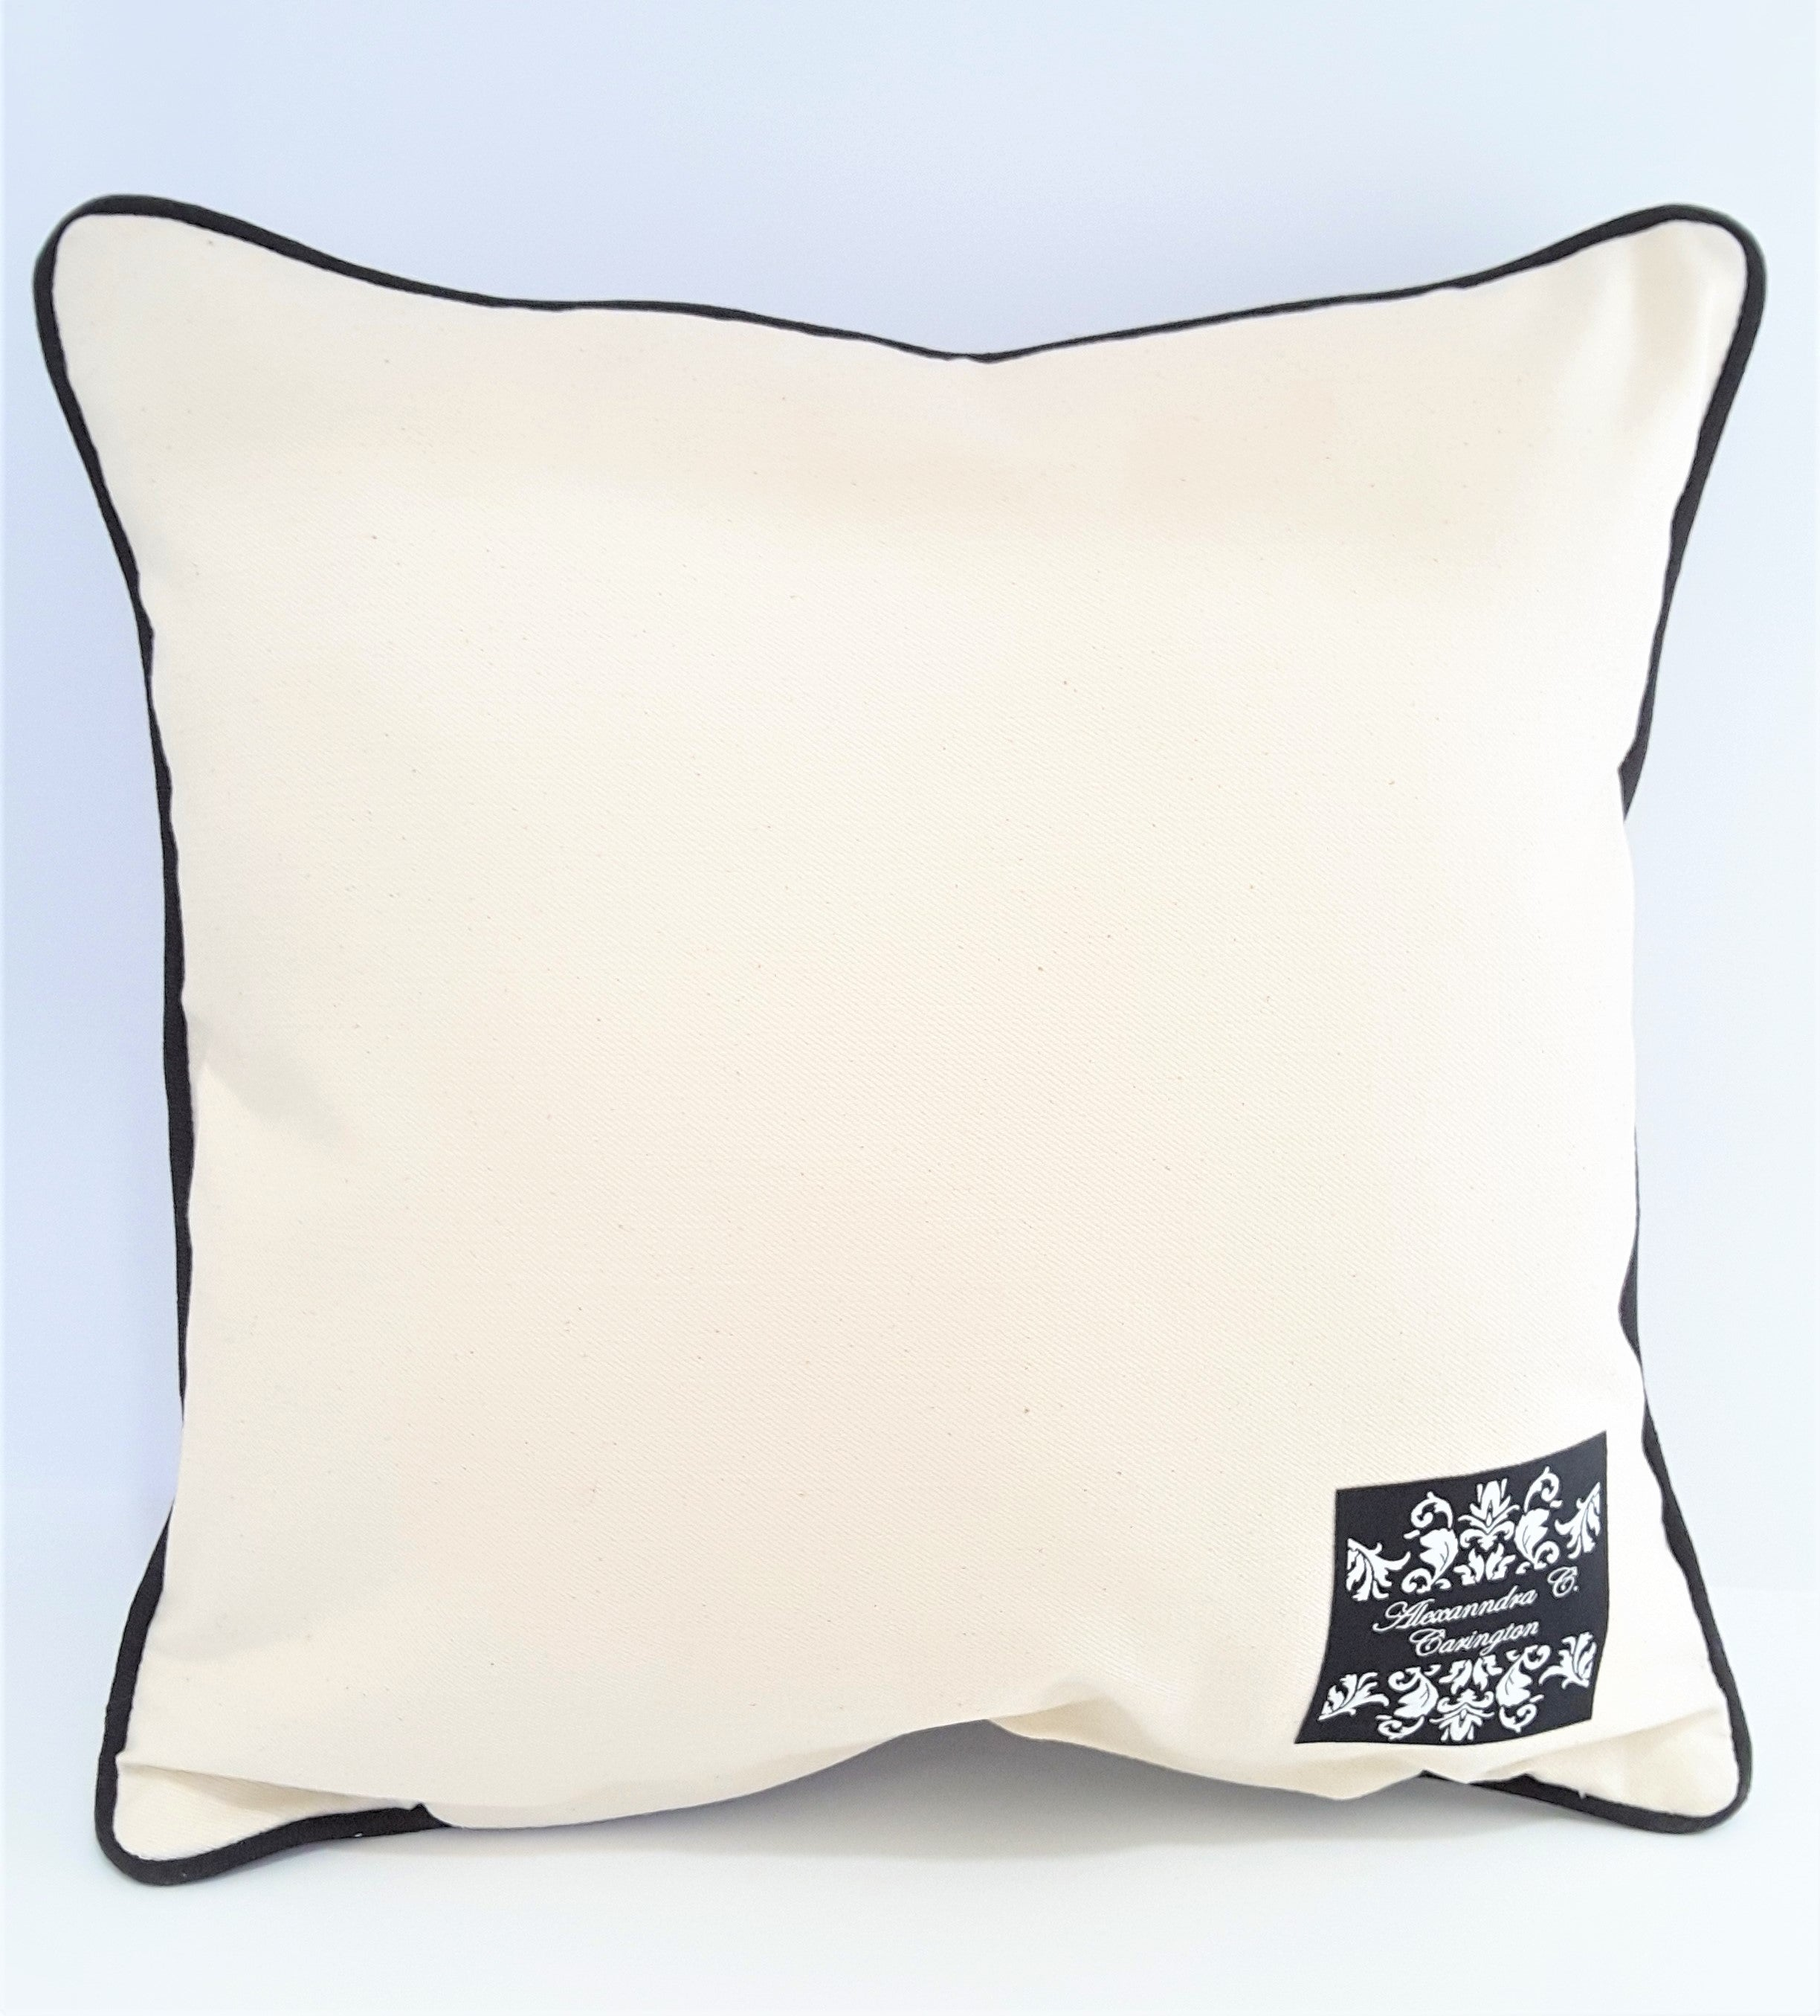 NATURAL DENIM BACK OF BLACK AND NATURAL STRIPE PILLOW